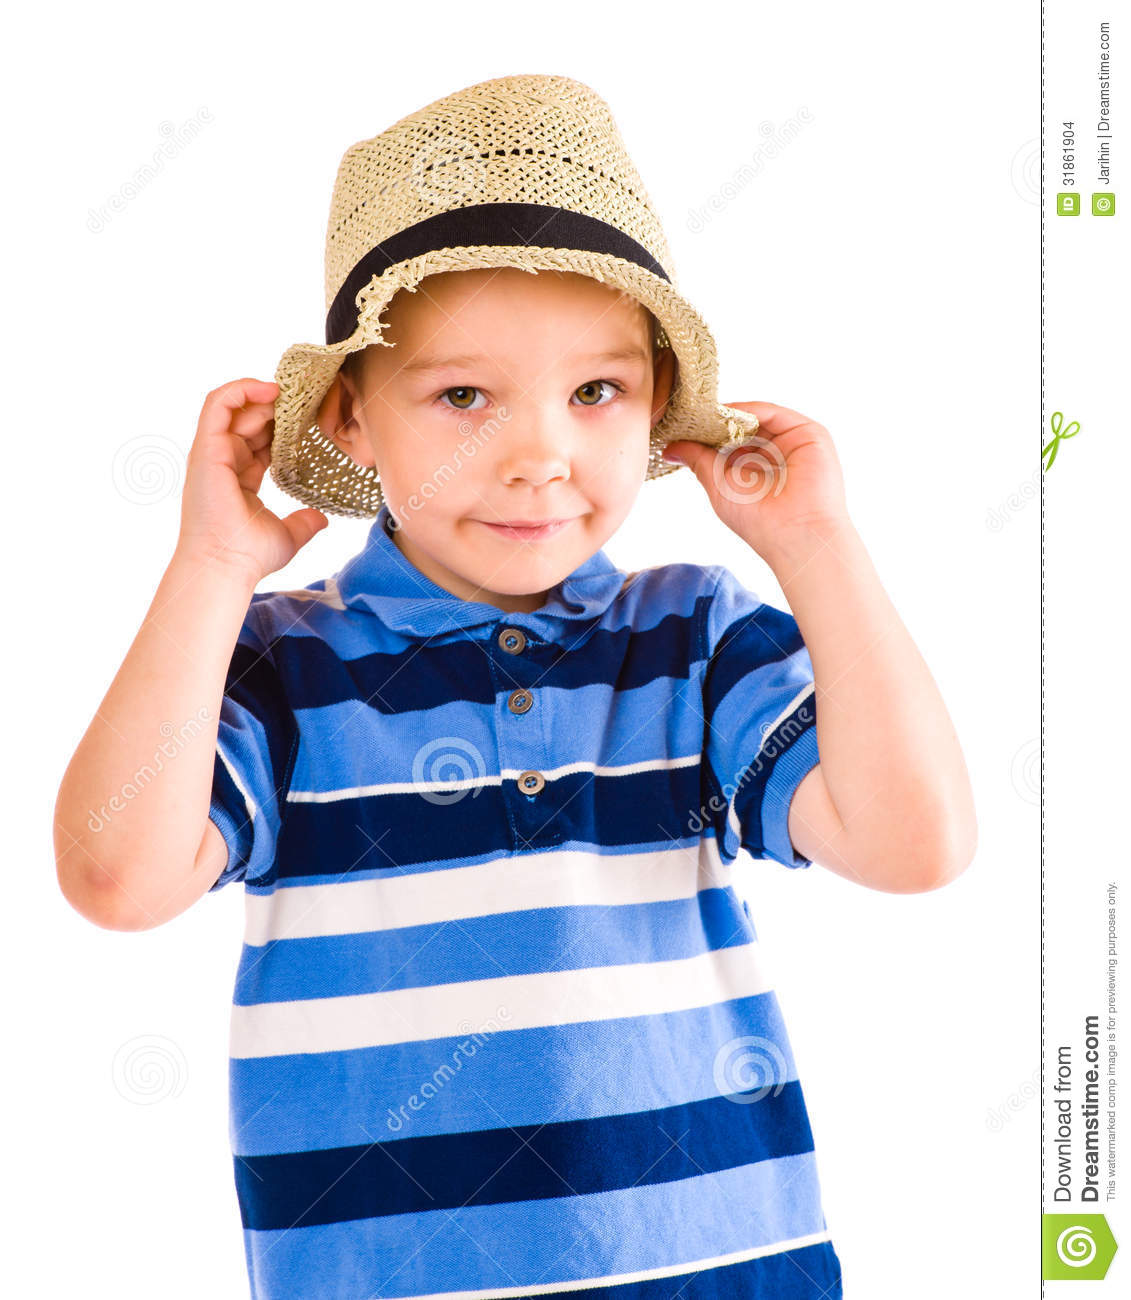 Http Www Dreamstime Com Stock Images Boy Hat Child Play Summer White Background Image31861904